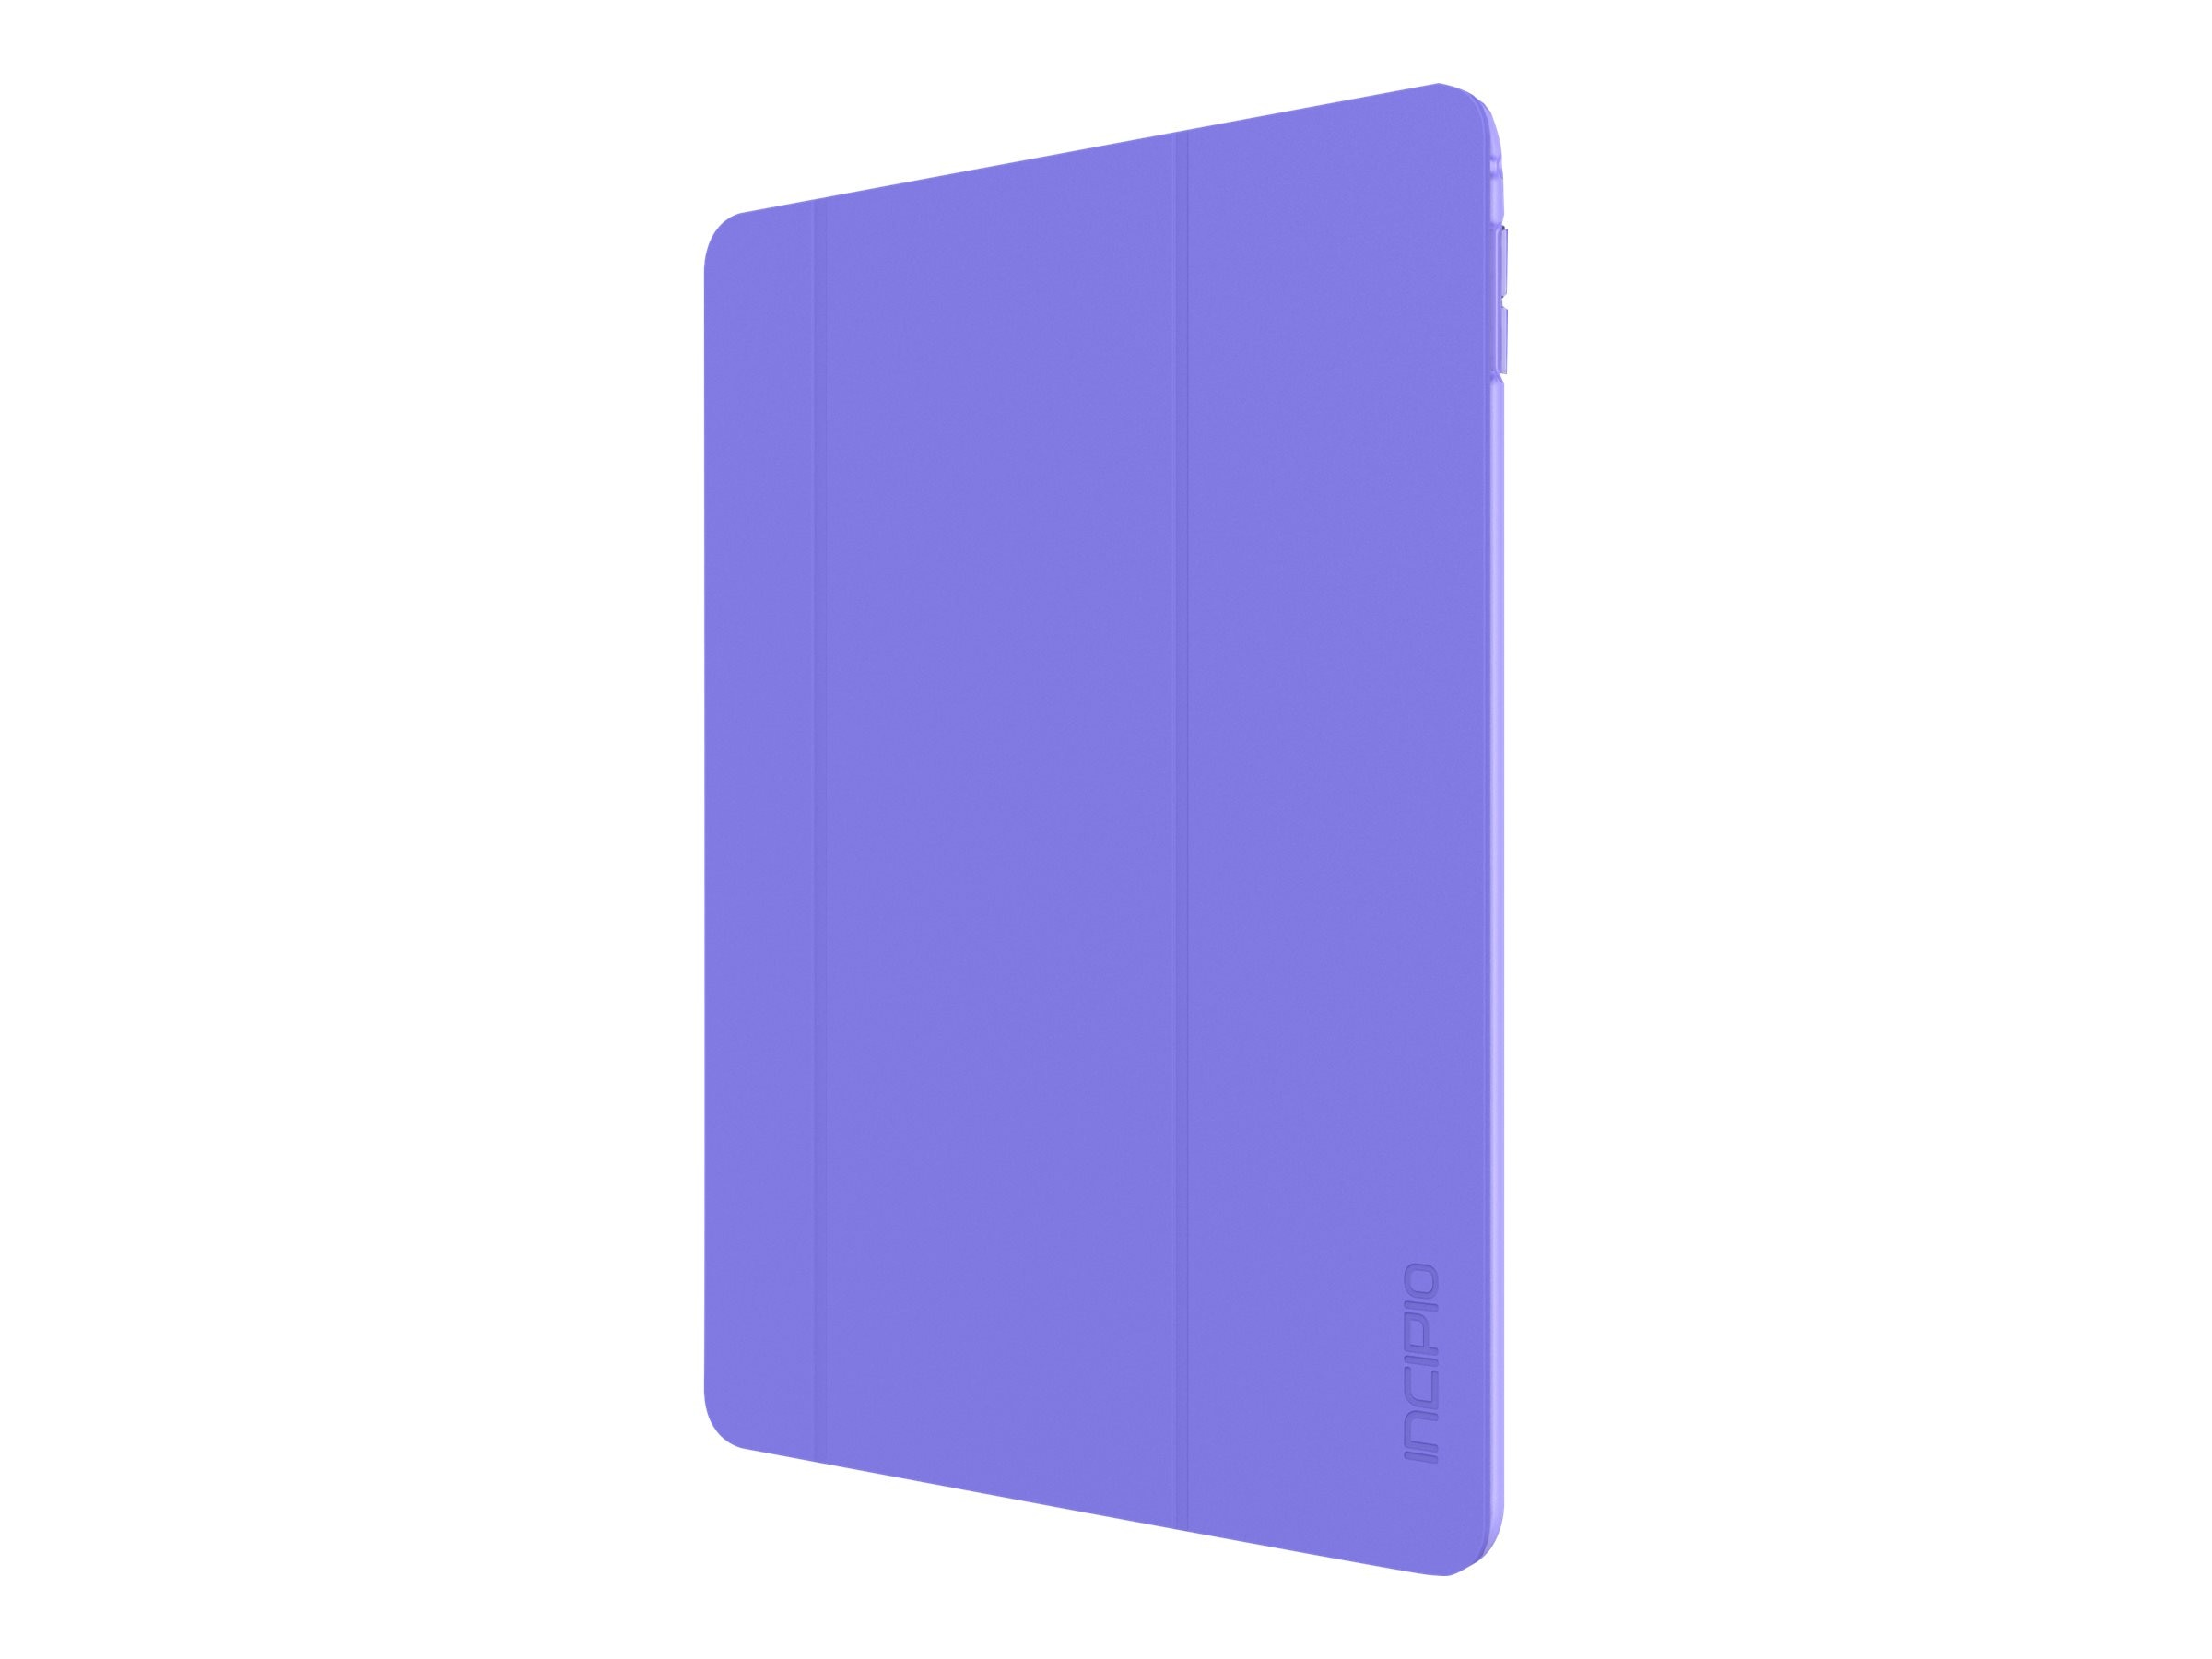 Incipio Octane Pure Translucent Co-Molded Folio for iPad Pro 9.7, Purple